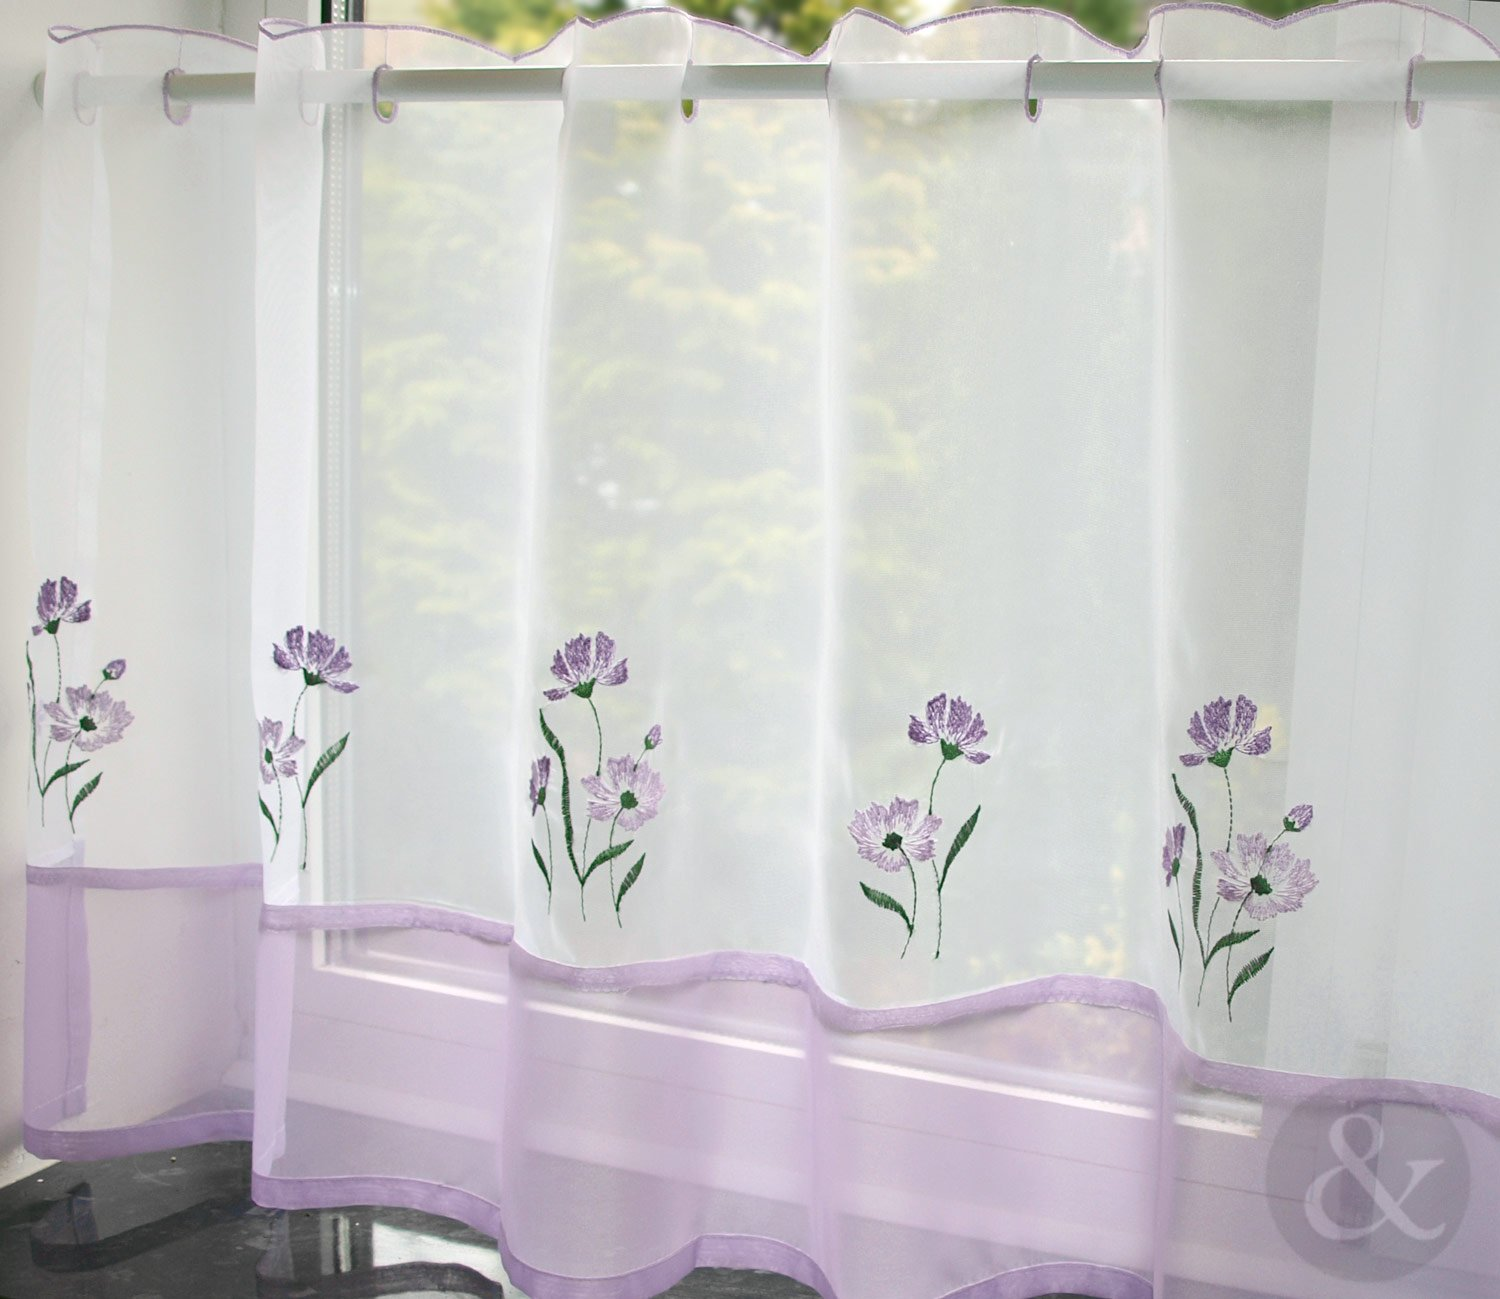 Kitchen cafe curtains - Caf Net Curtains Kitchen Nets Ready Made Voile Curtain Panel Amazon Co Uk Kitchen Home